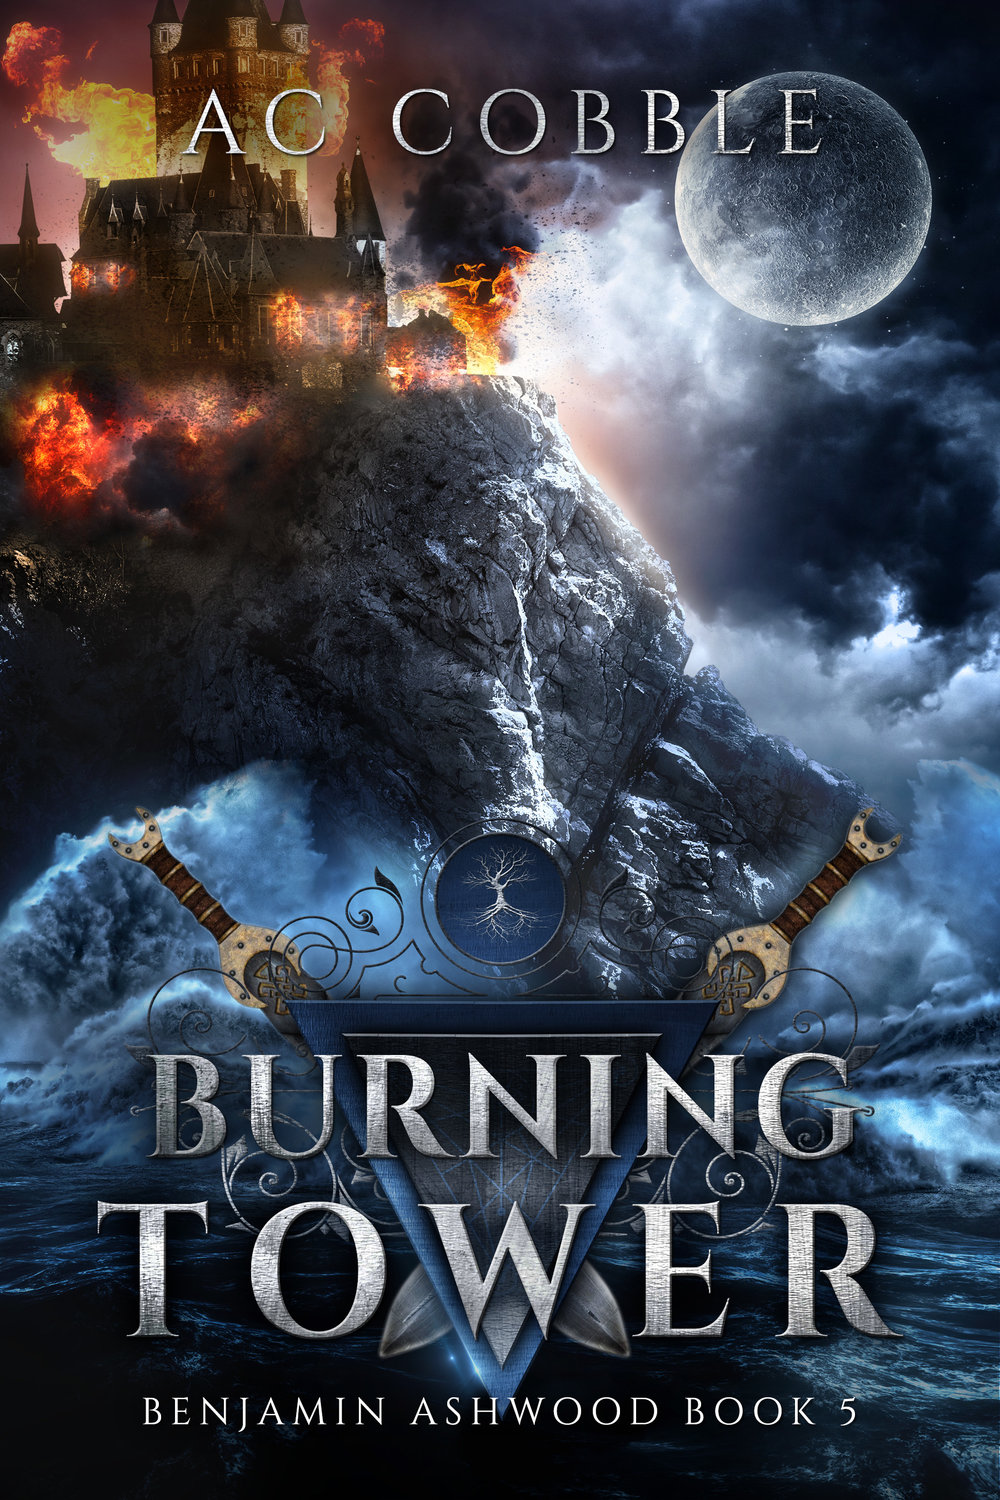 Burning Tower - Benjamin Ashwood Book 5.jpg